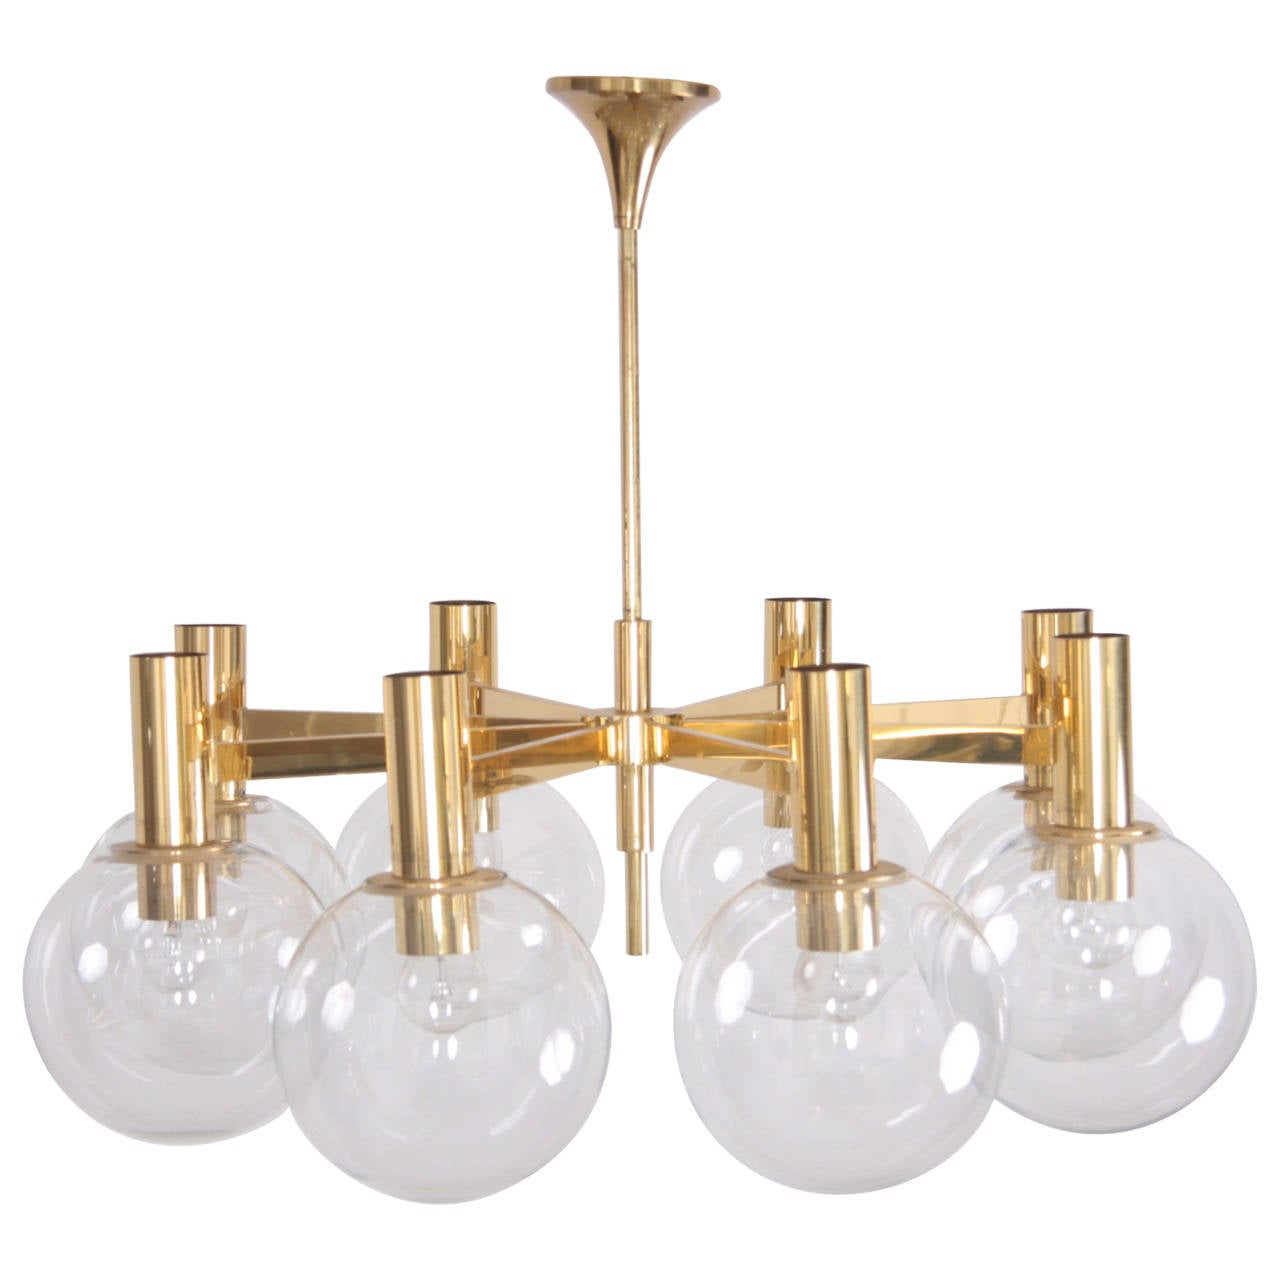 Extra Large Brass Chandelier with Eight Arms by Ott International – Large Brass Chandelier